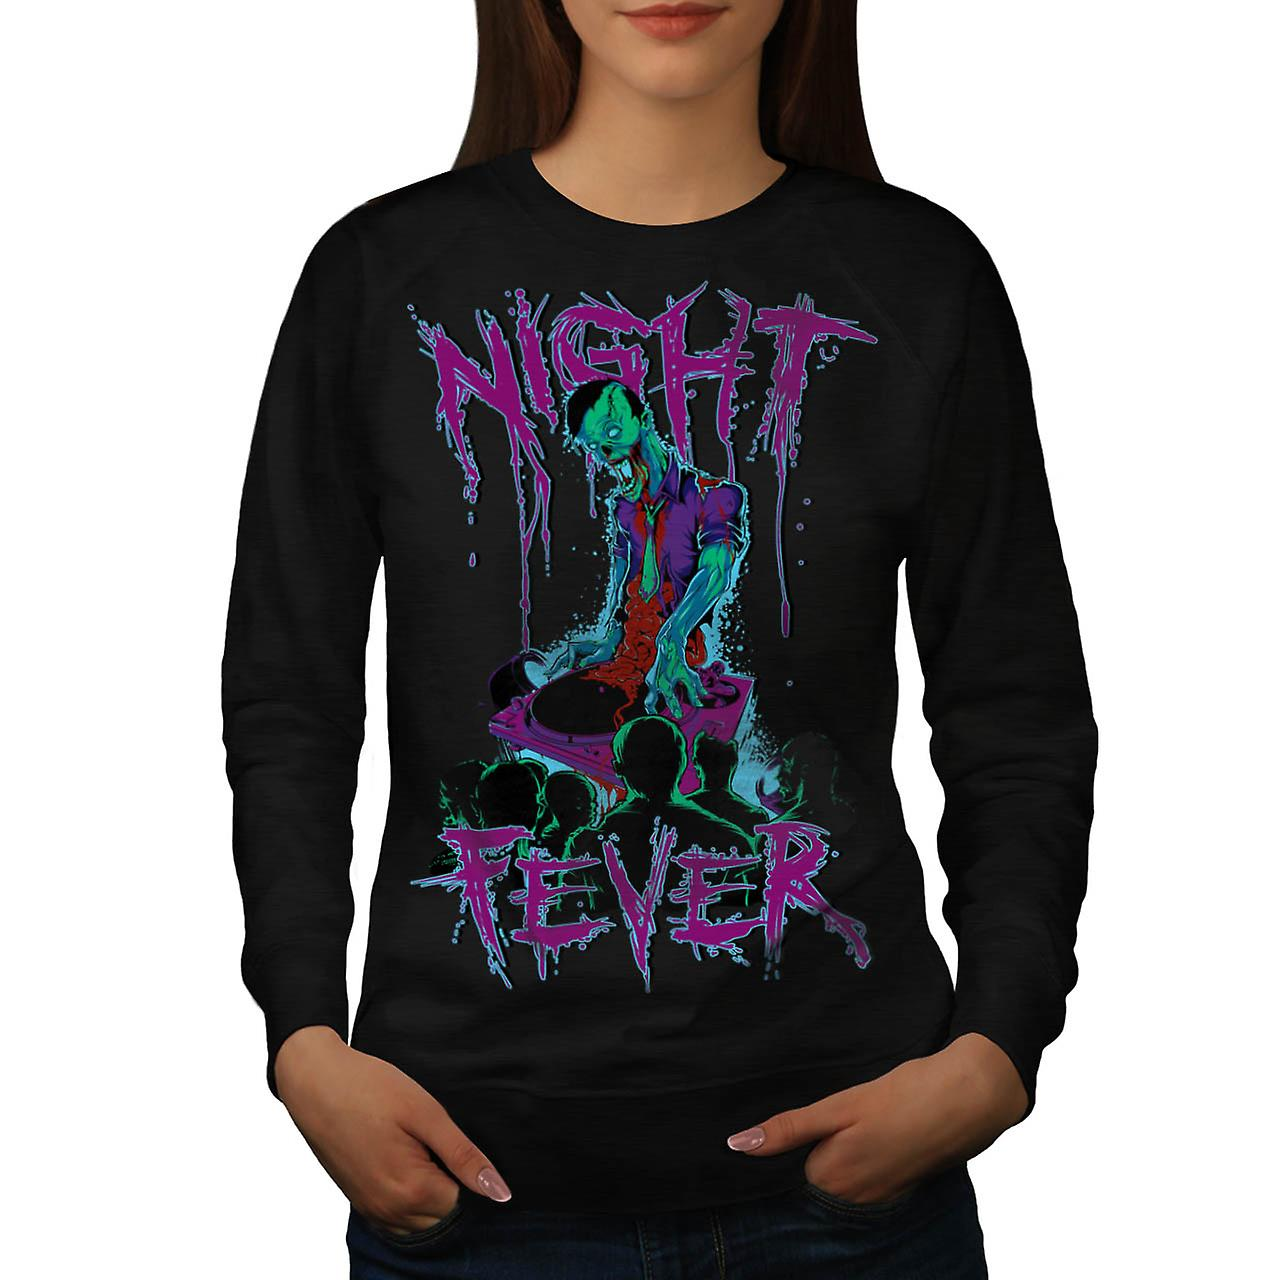 Night Fever Dead Zombie Women Black Sweatshirt | Wellcoda